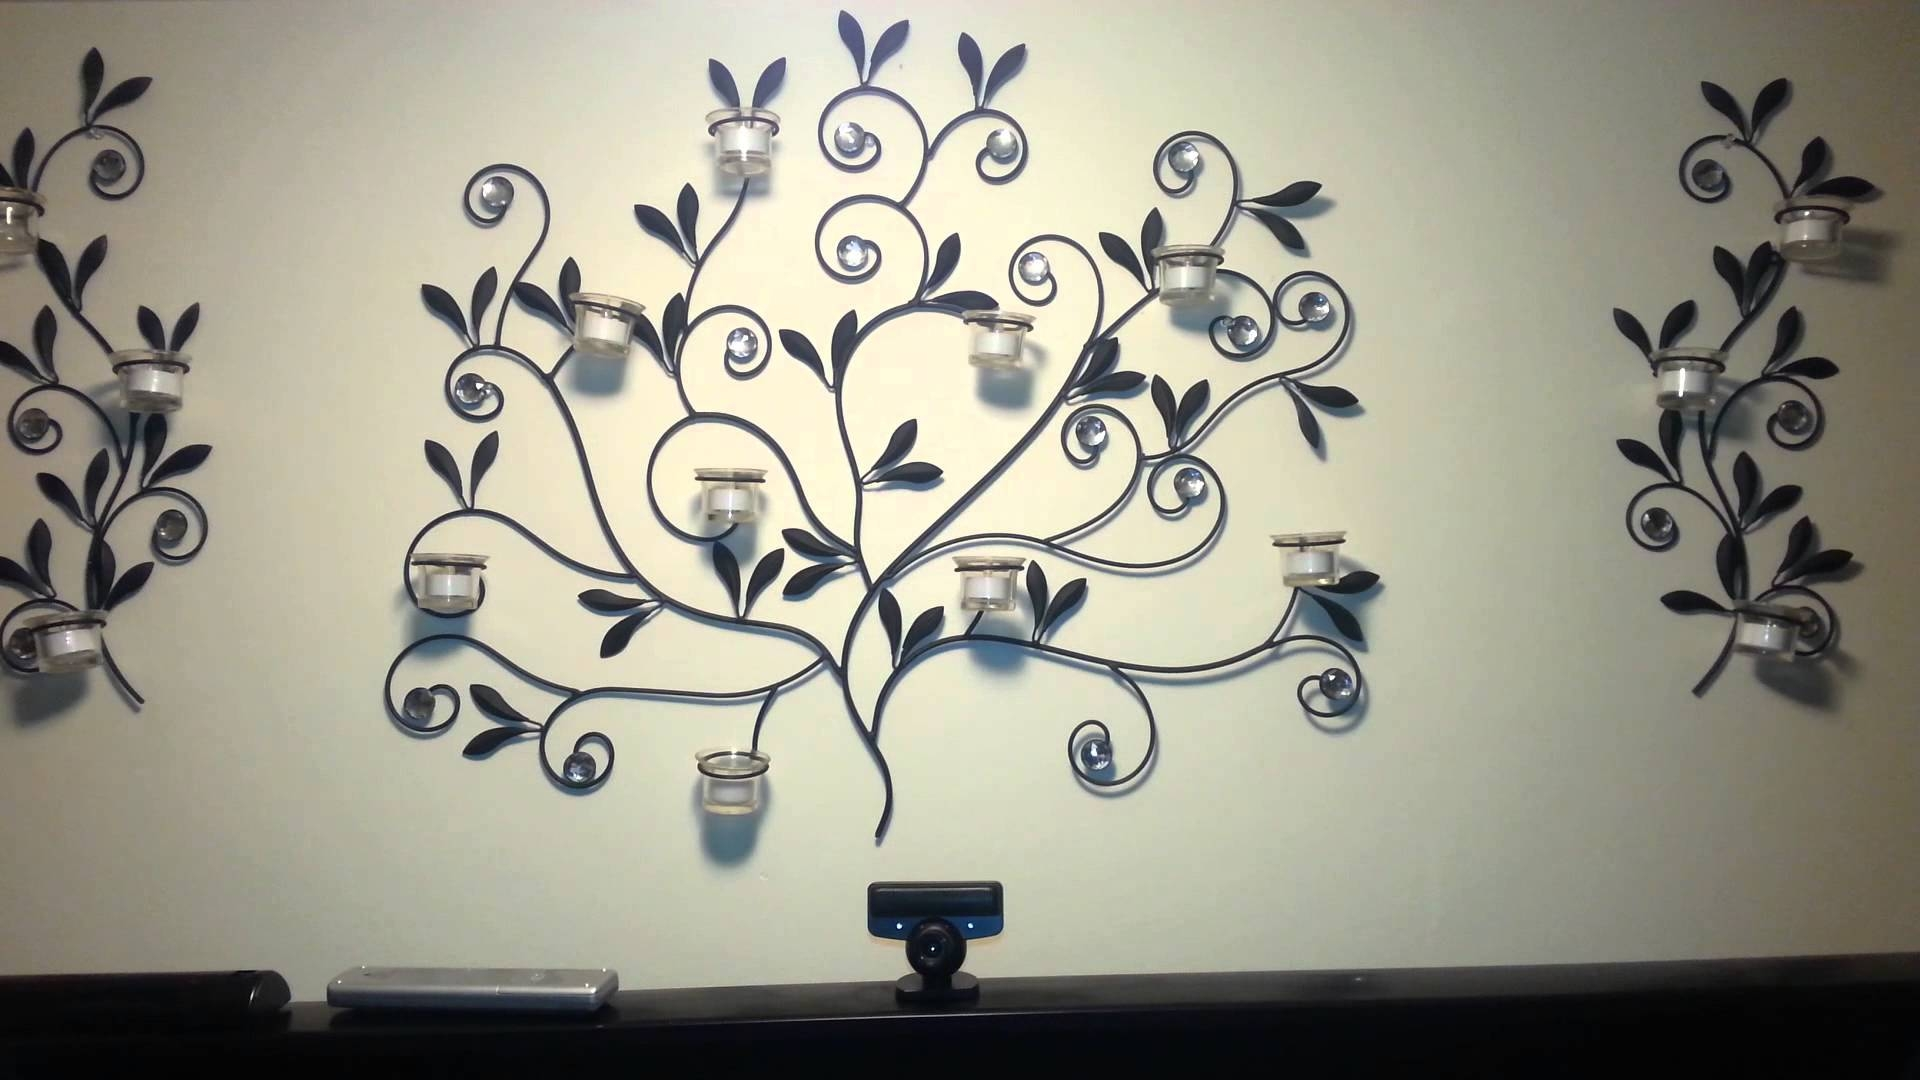 Walmart Metal Wall Art – Youtube Intended For Recent Walmart Wall Stickers (View 24 of 25)